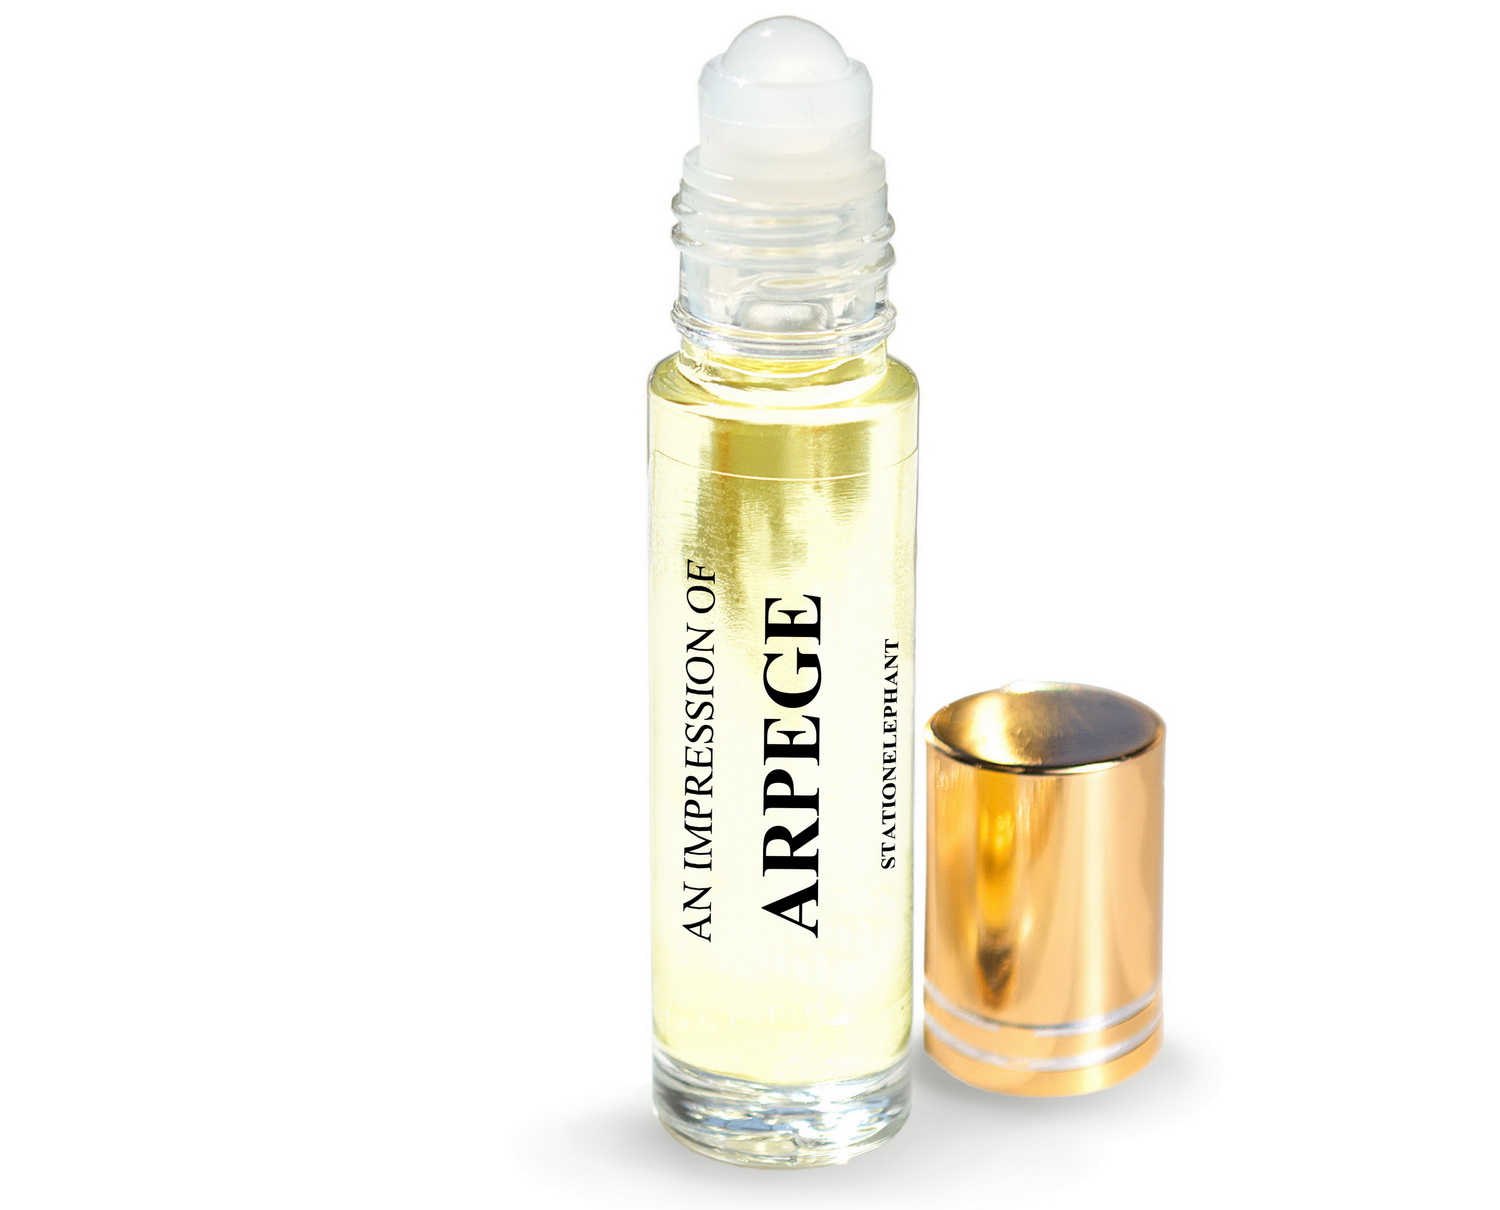 Apege Type Vegan Perfume Oil by StationElephant.